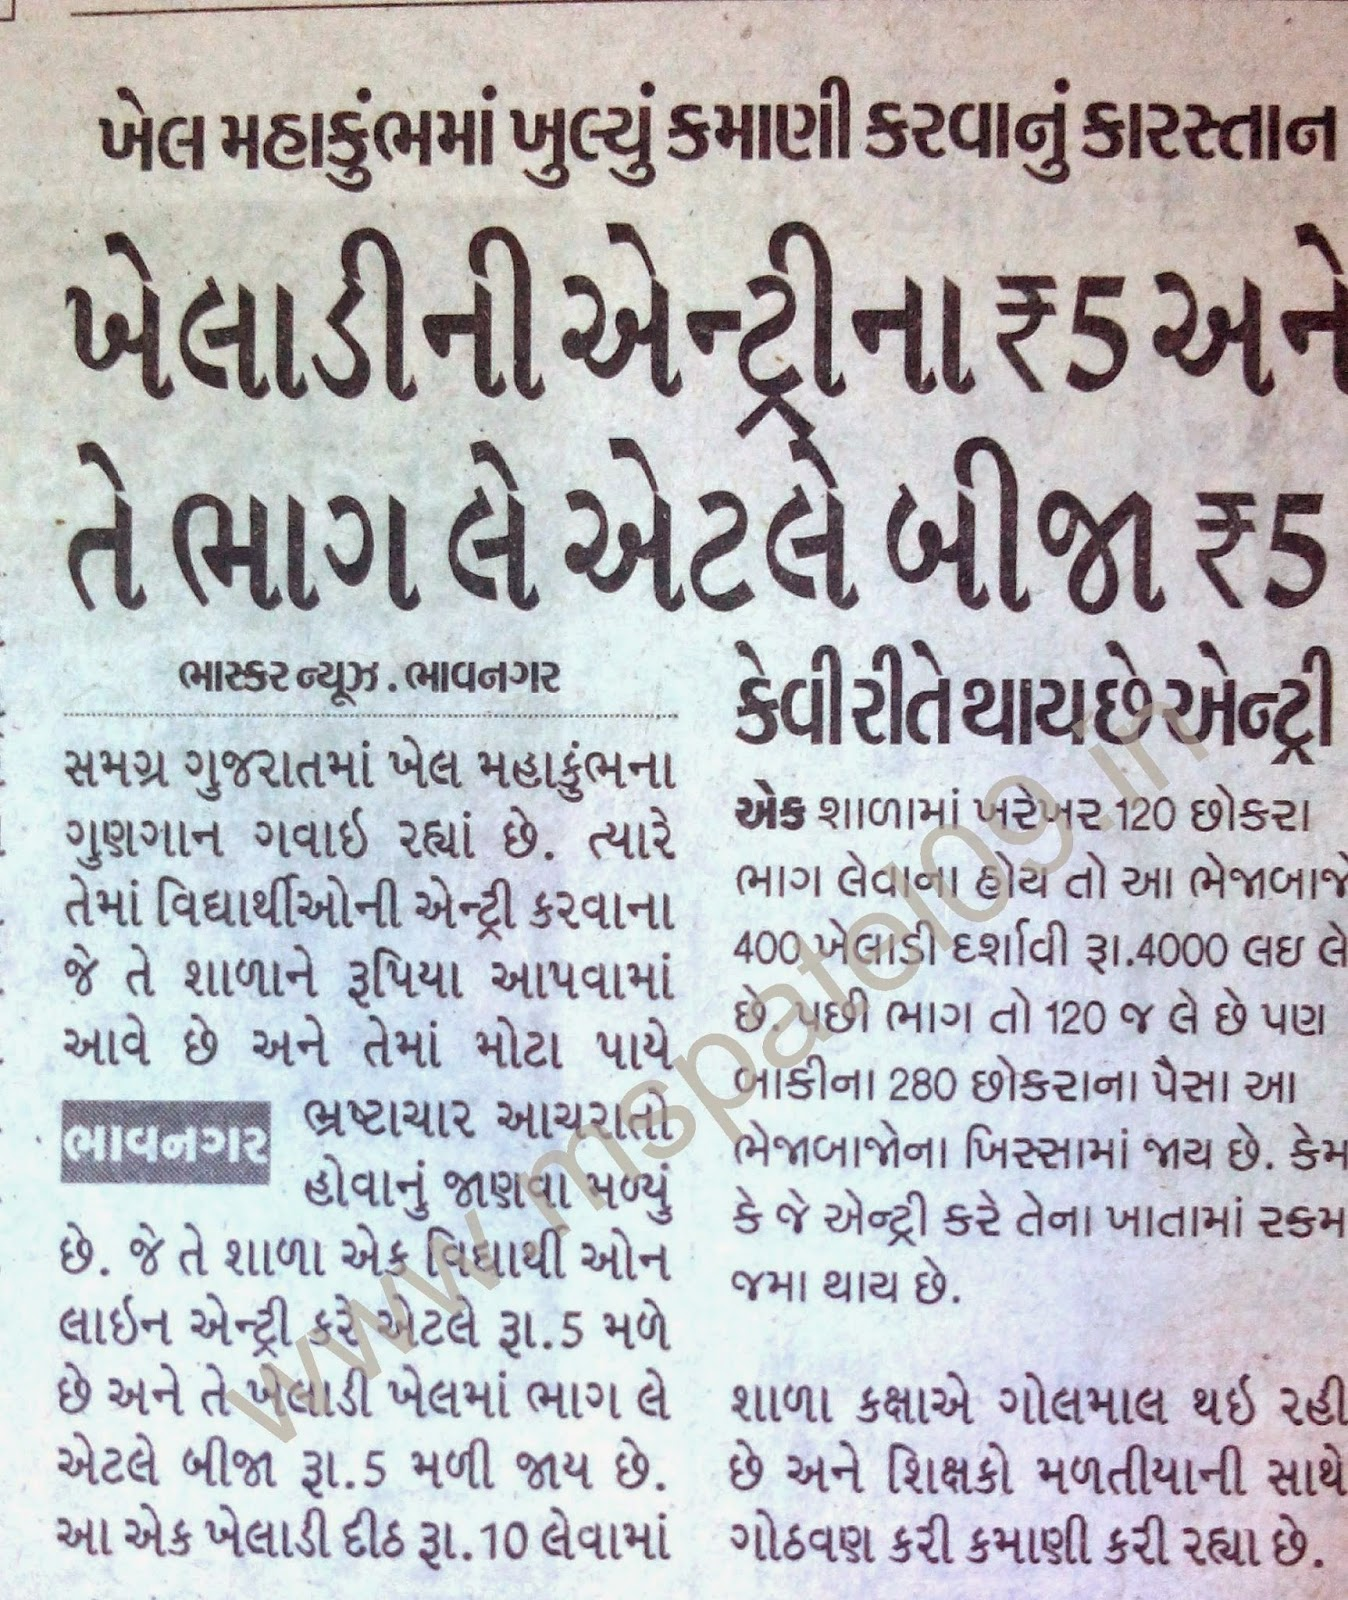 Khel Mahakumbh Registration related news